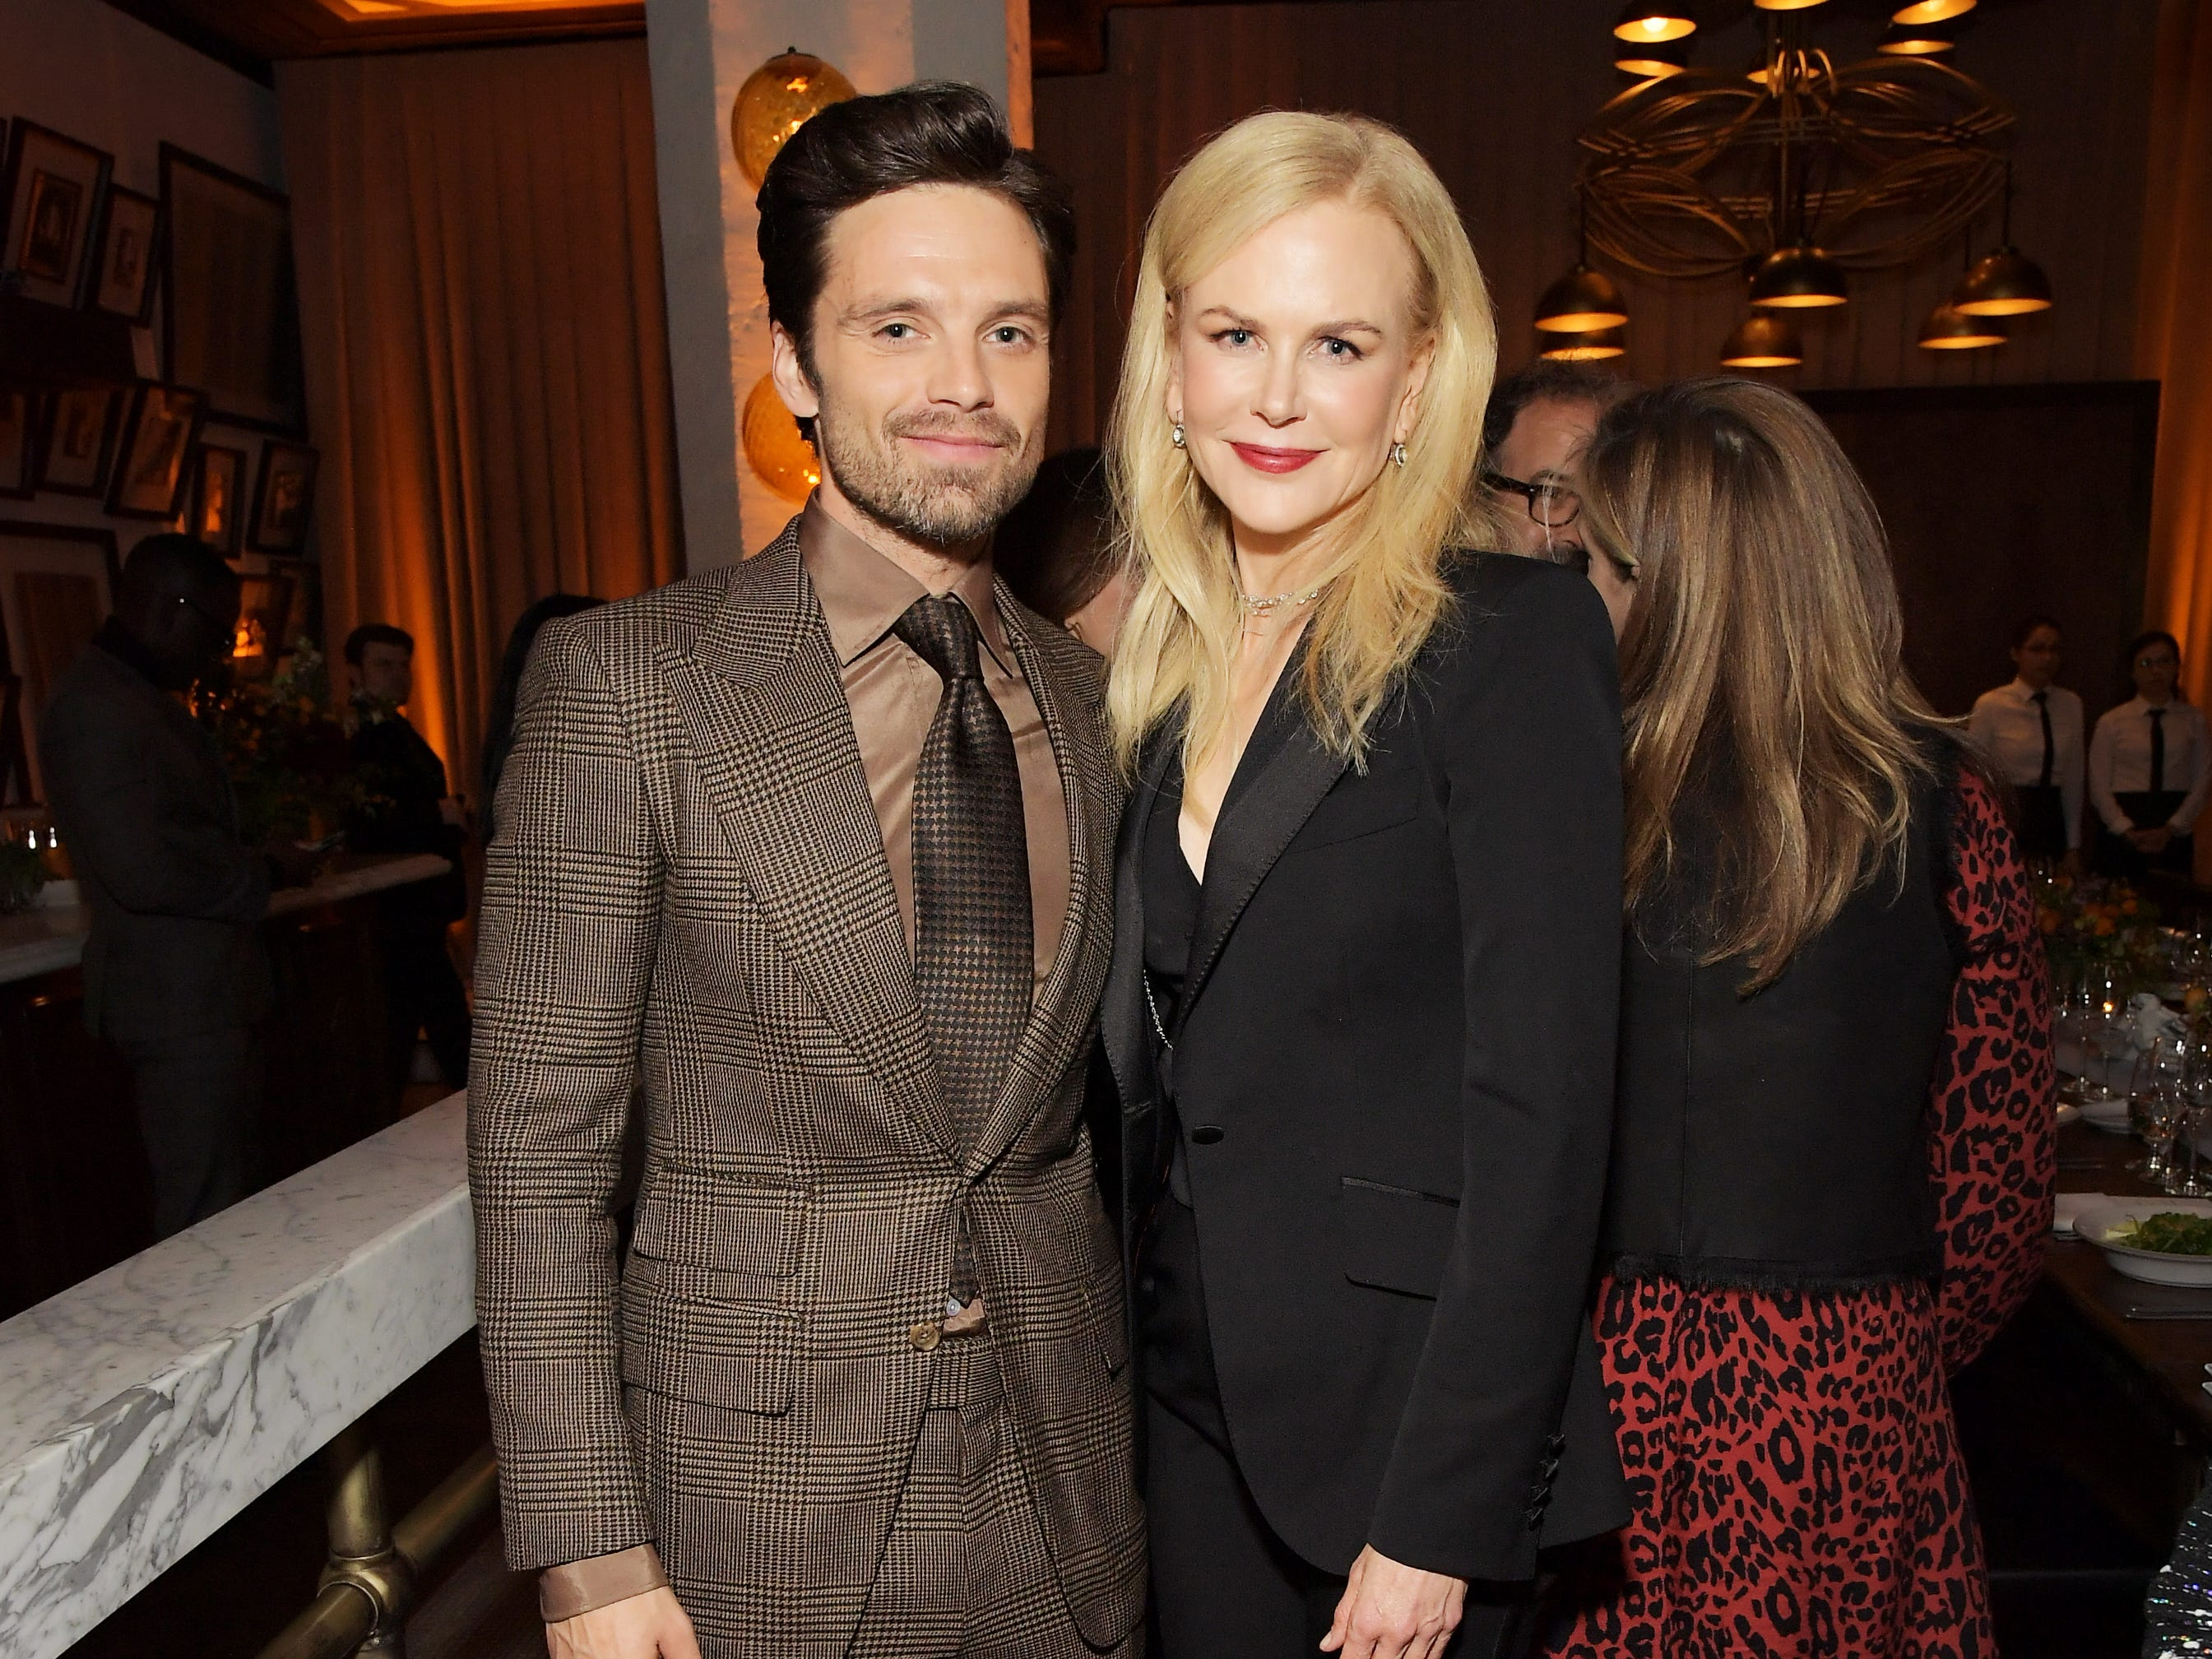 LOS ANGELES, CALIFORNIA - NOVEMBER 13: Sebastian Stan (L) and Nicole Kidman attend the Audi hosted private dinner for 'Destroyer' during AFI FEST 2018 at Public Kitchen & Bar at the Roosevelt on November 13, 2018 in Los Angeles, California. (Photo by Charley Gallay/Getty Images for Audi) ORG XMIT: 775258315 ORIG FILE ID: 1067284018